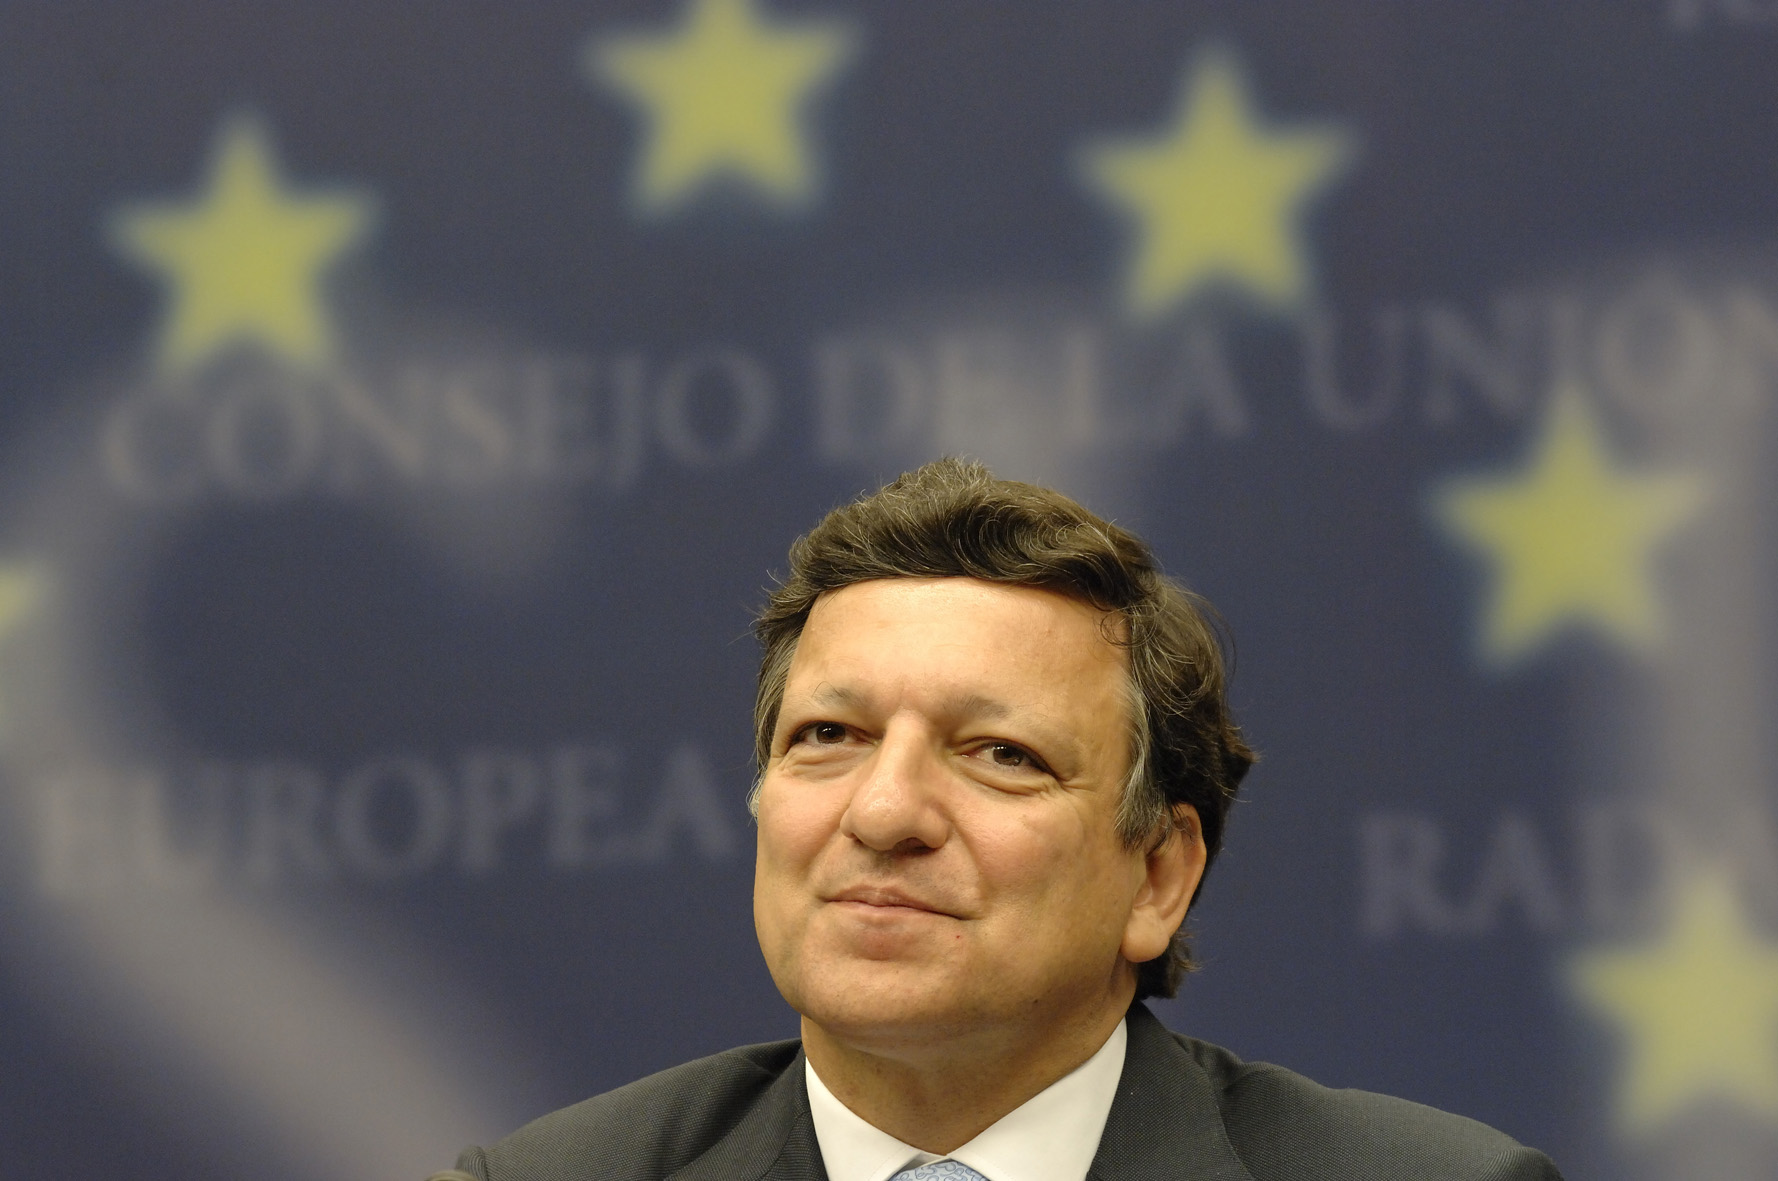 Opening of the Intergovernmental Conference by José Manuel Barroso, President of the EC